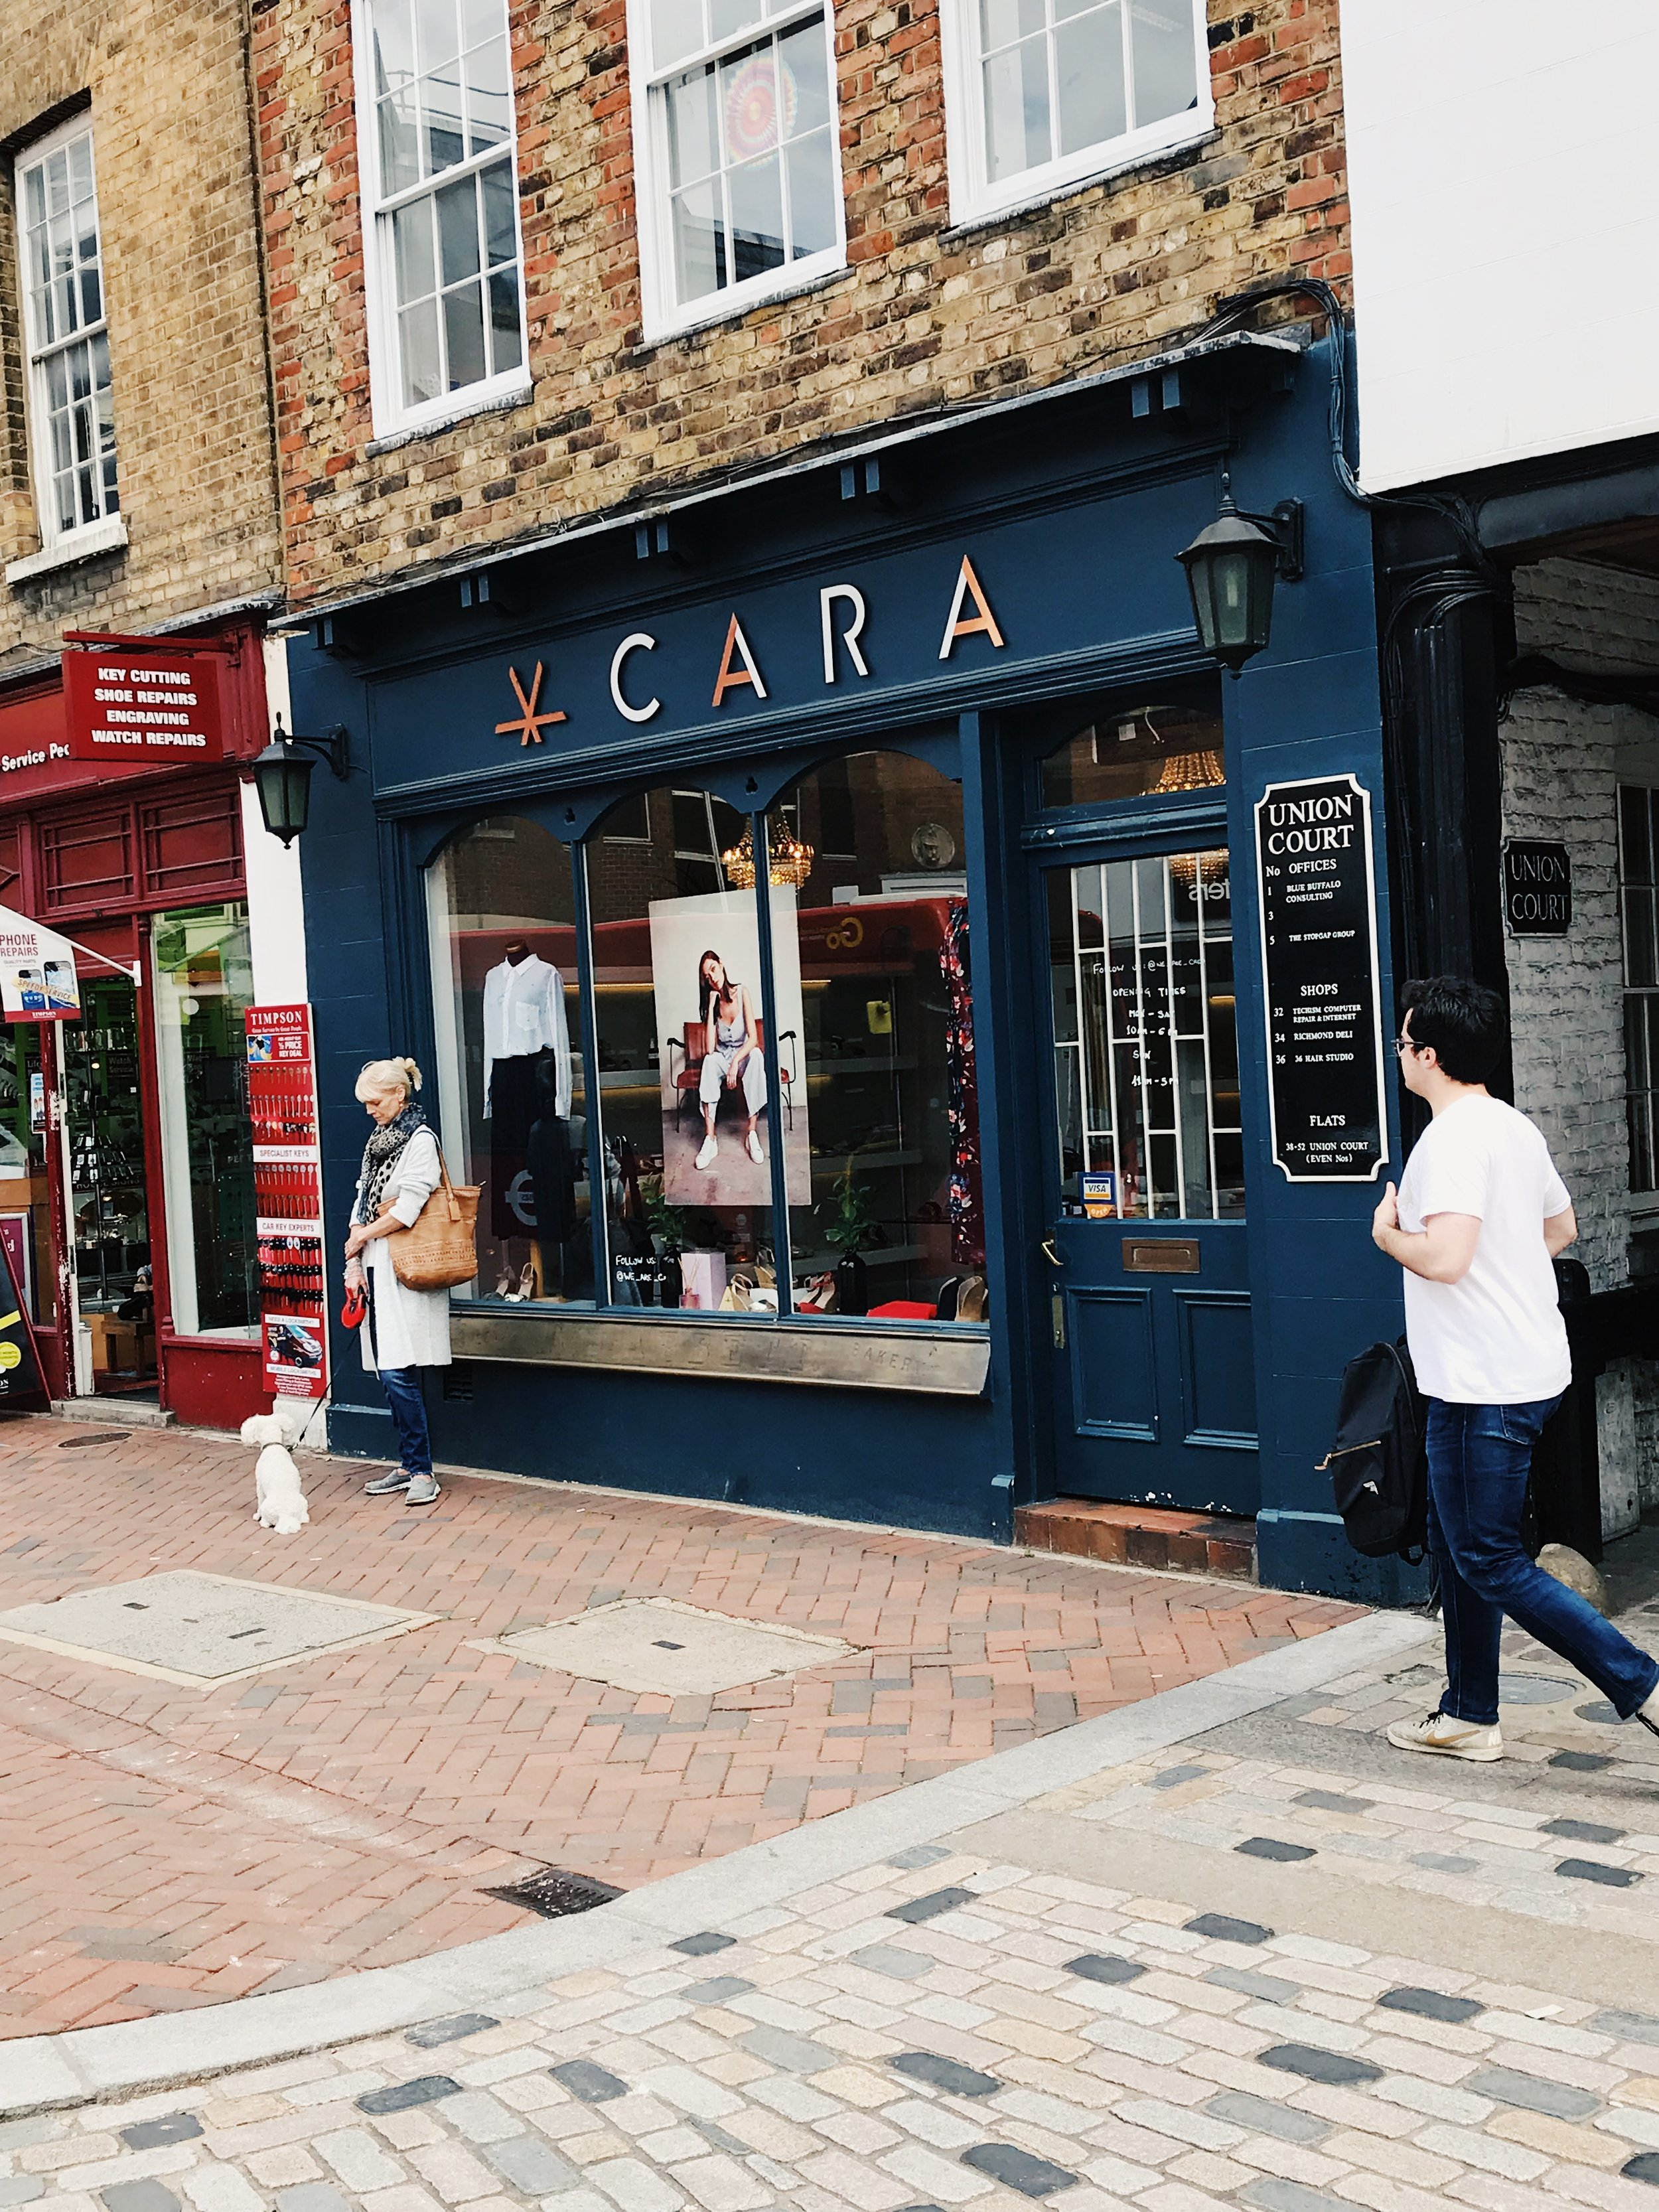 CARA is, just a short stroll from Richmond train station